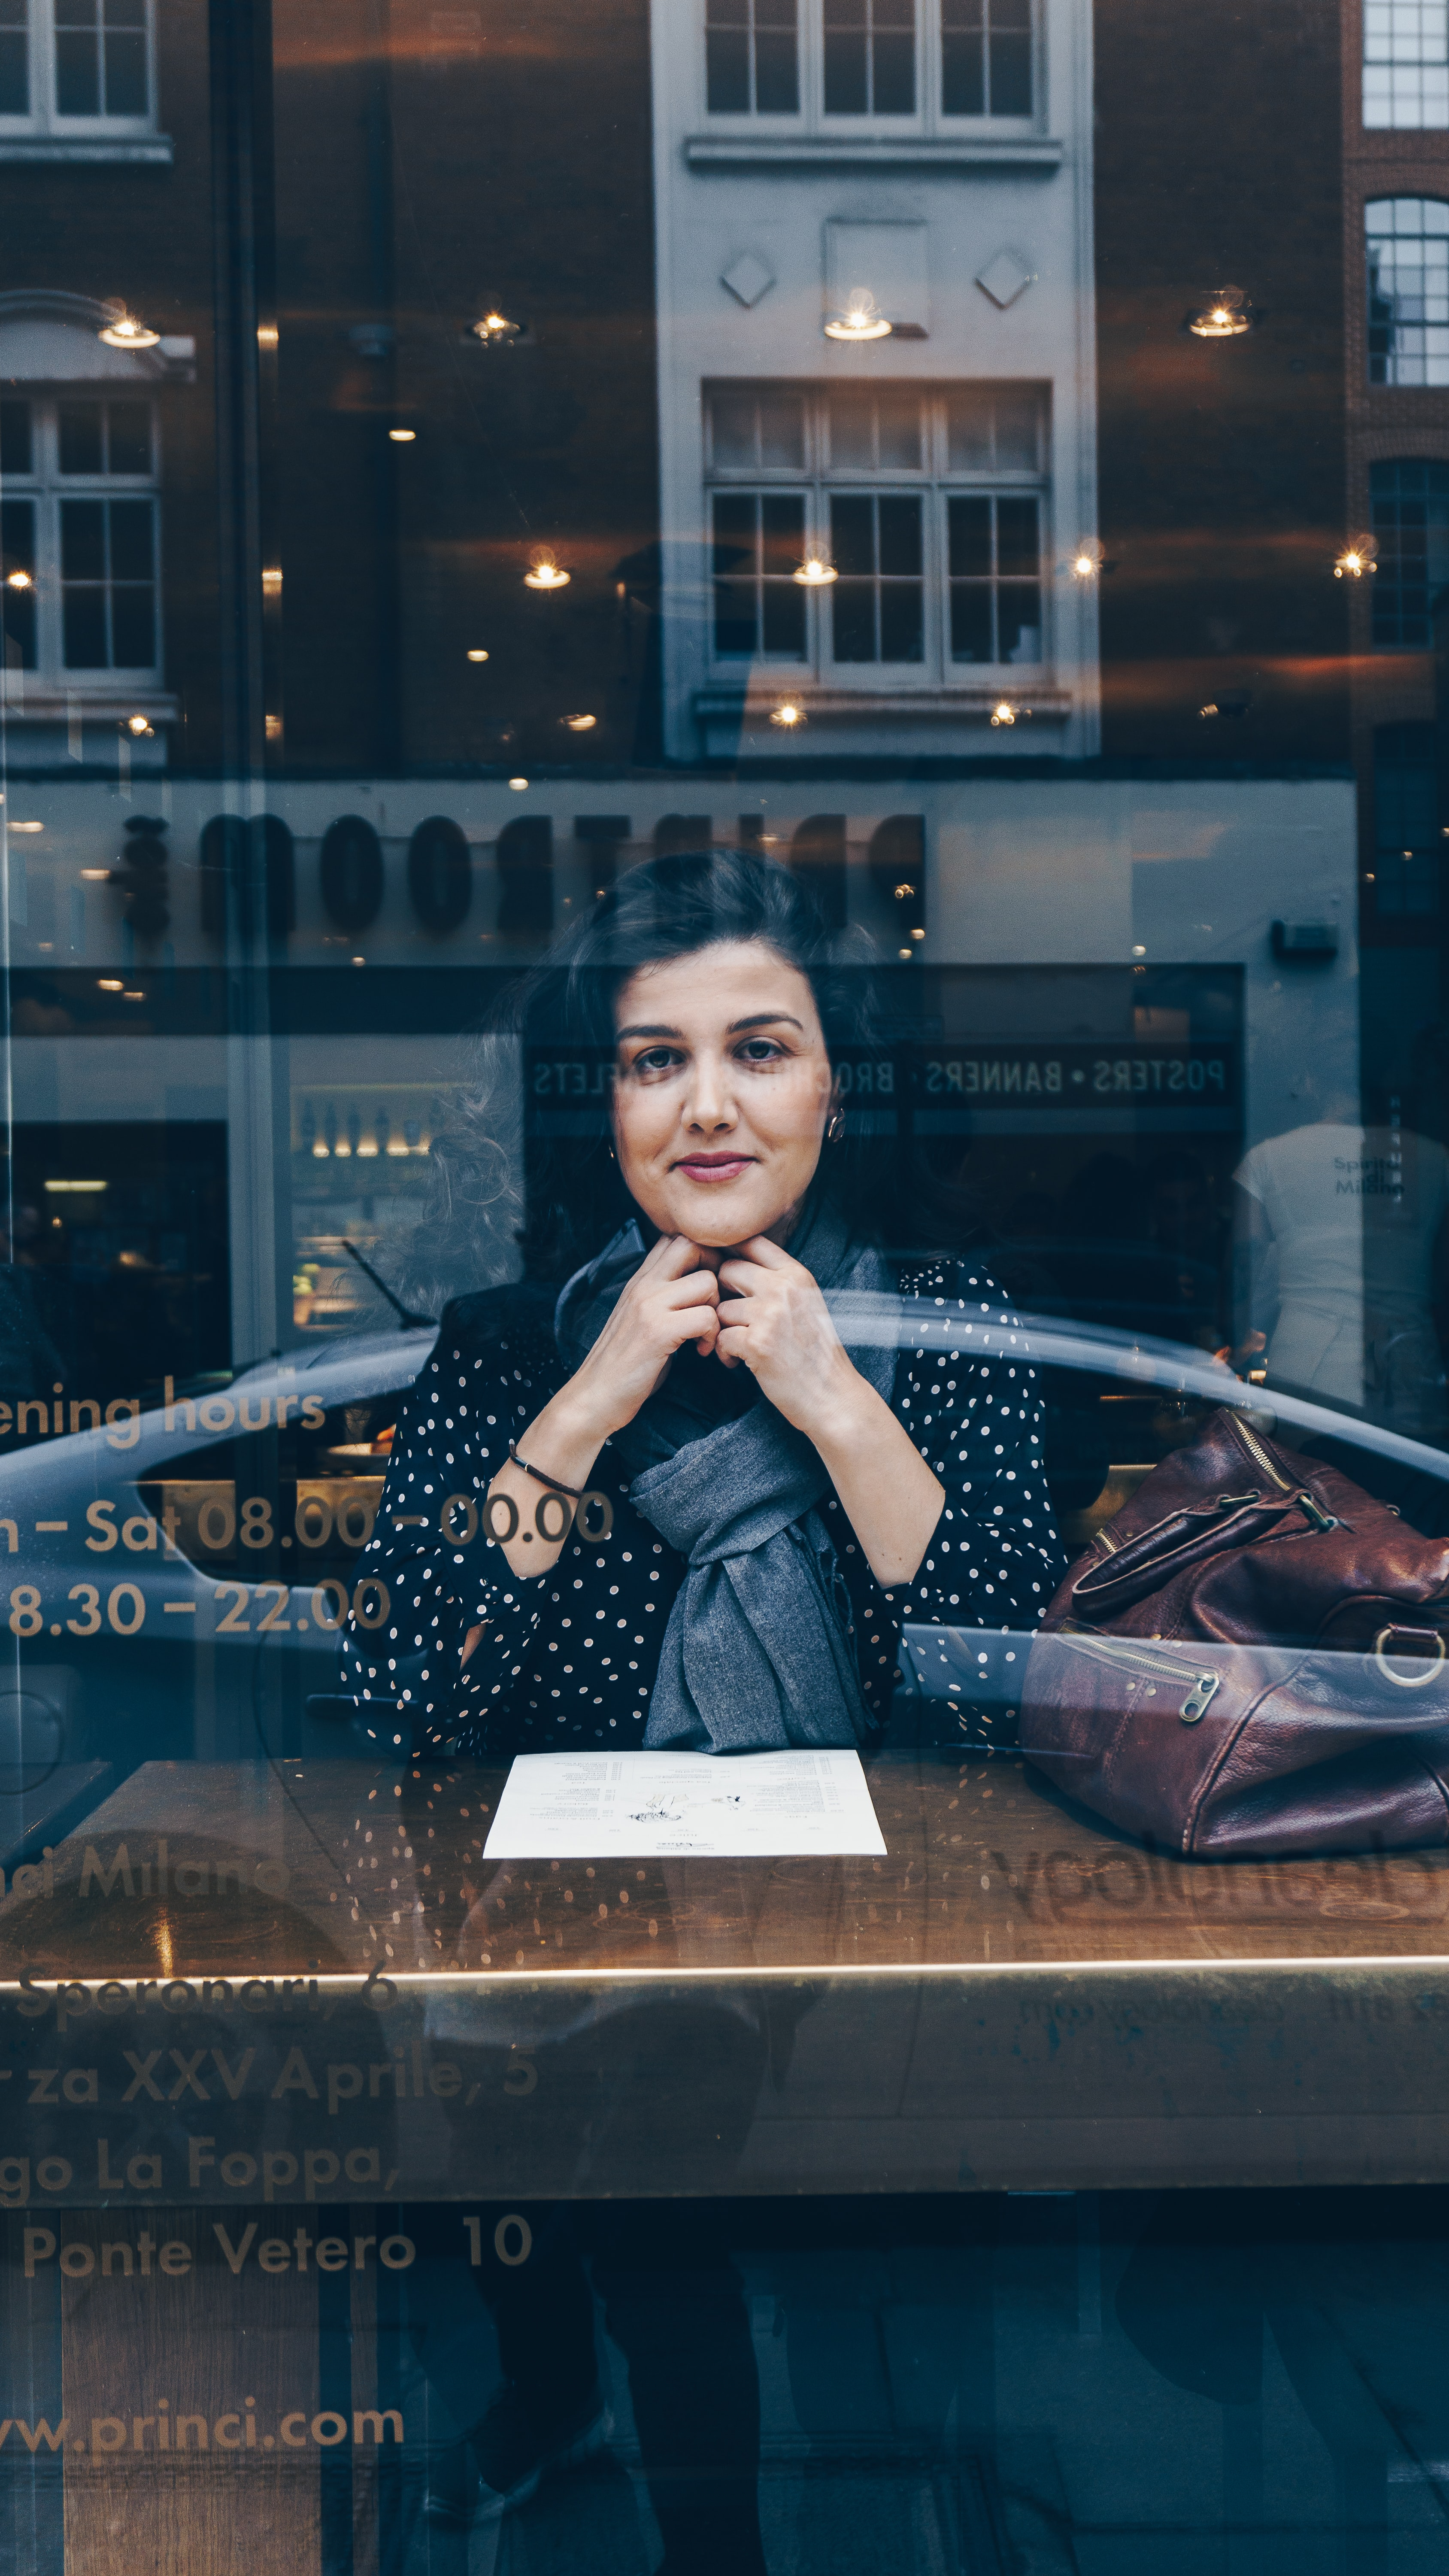 A woman leaning on her arms looks through a cafe window that reflects a city scene